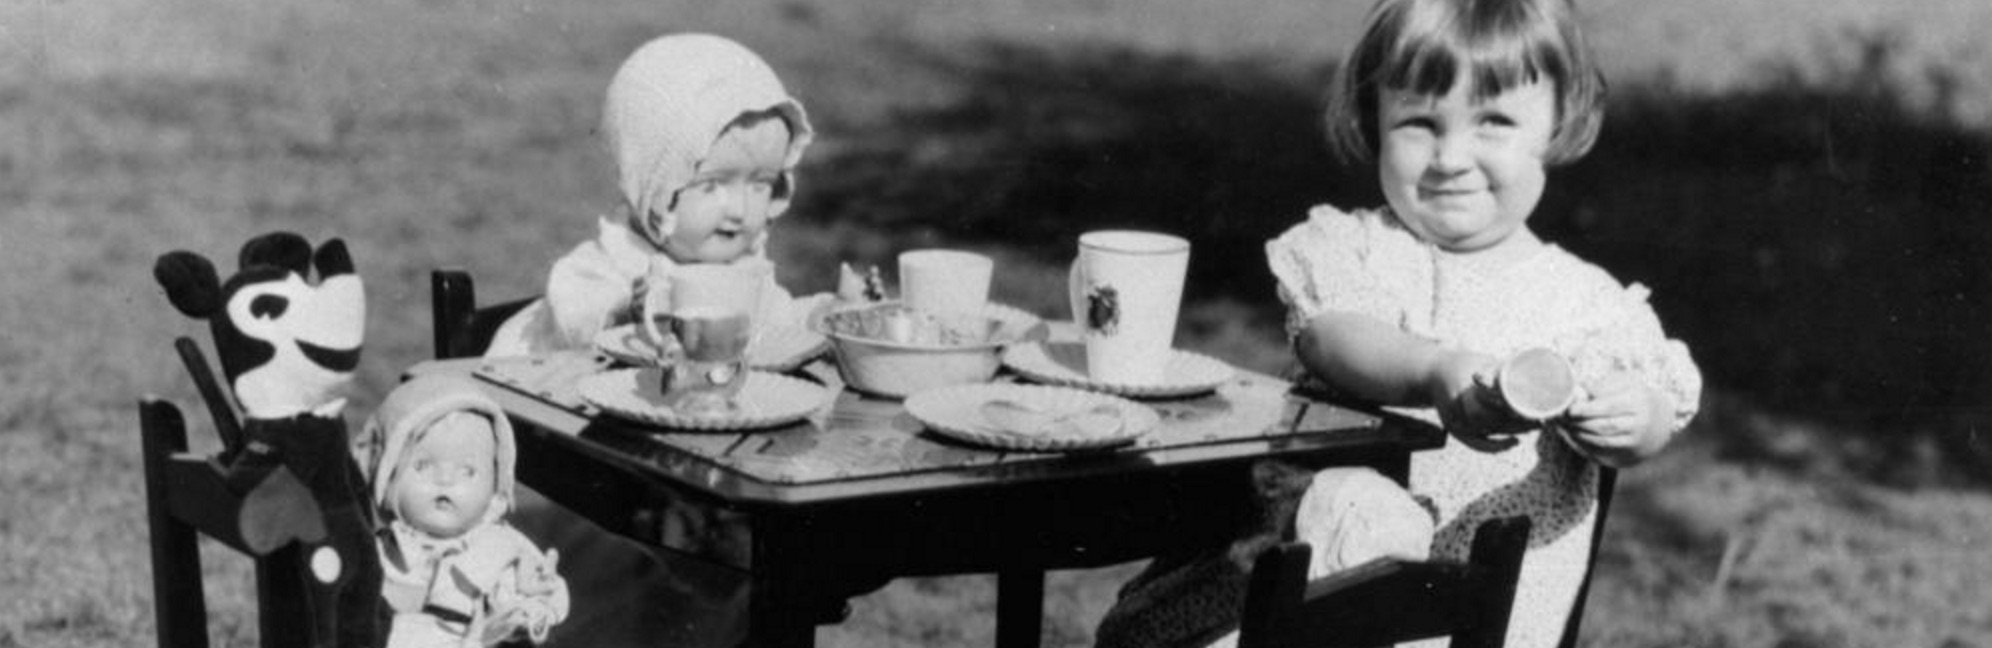 Young girl entertaining Mickey Mouse and other friends at a make-believe tea party, 1930s